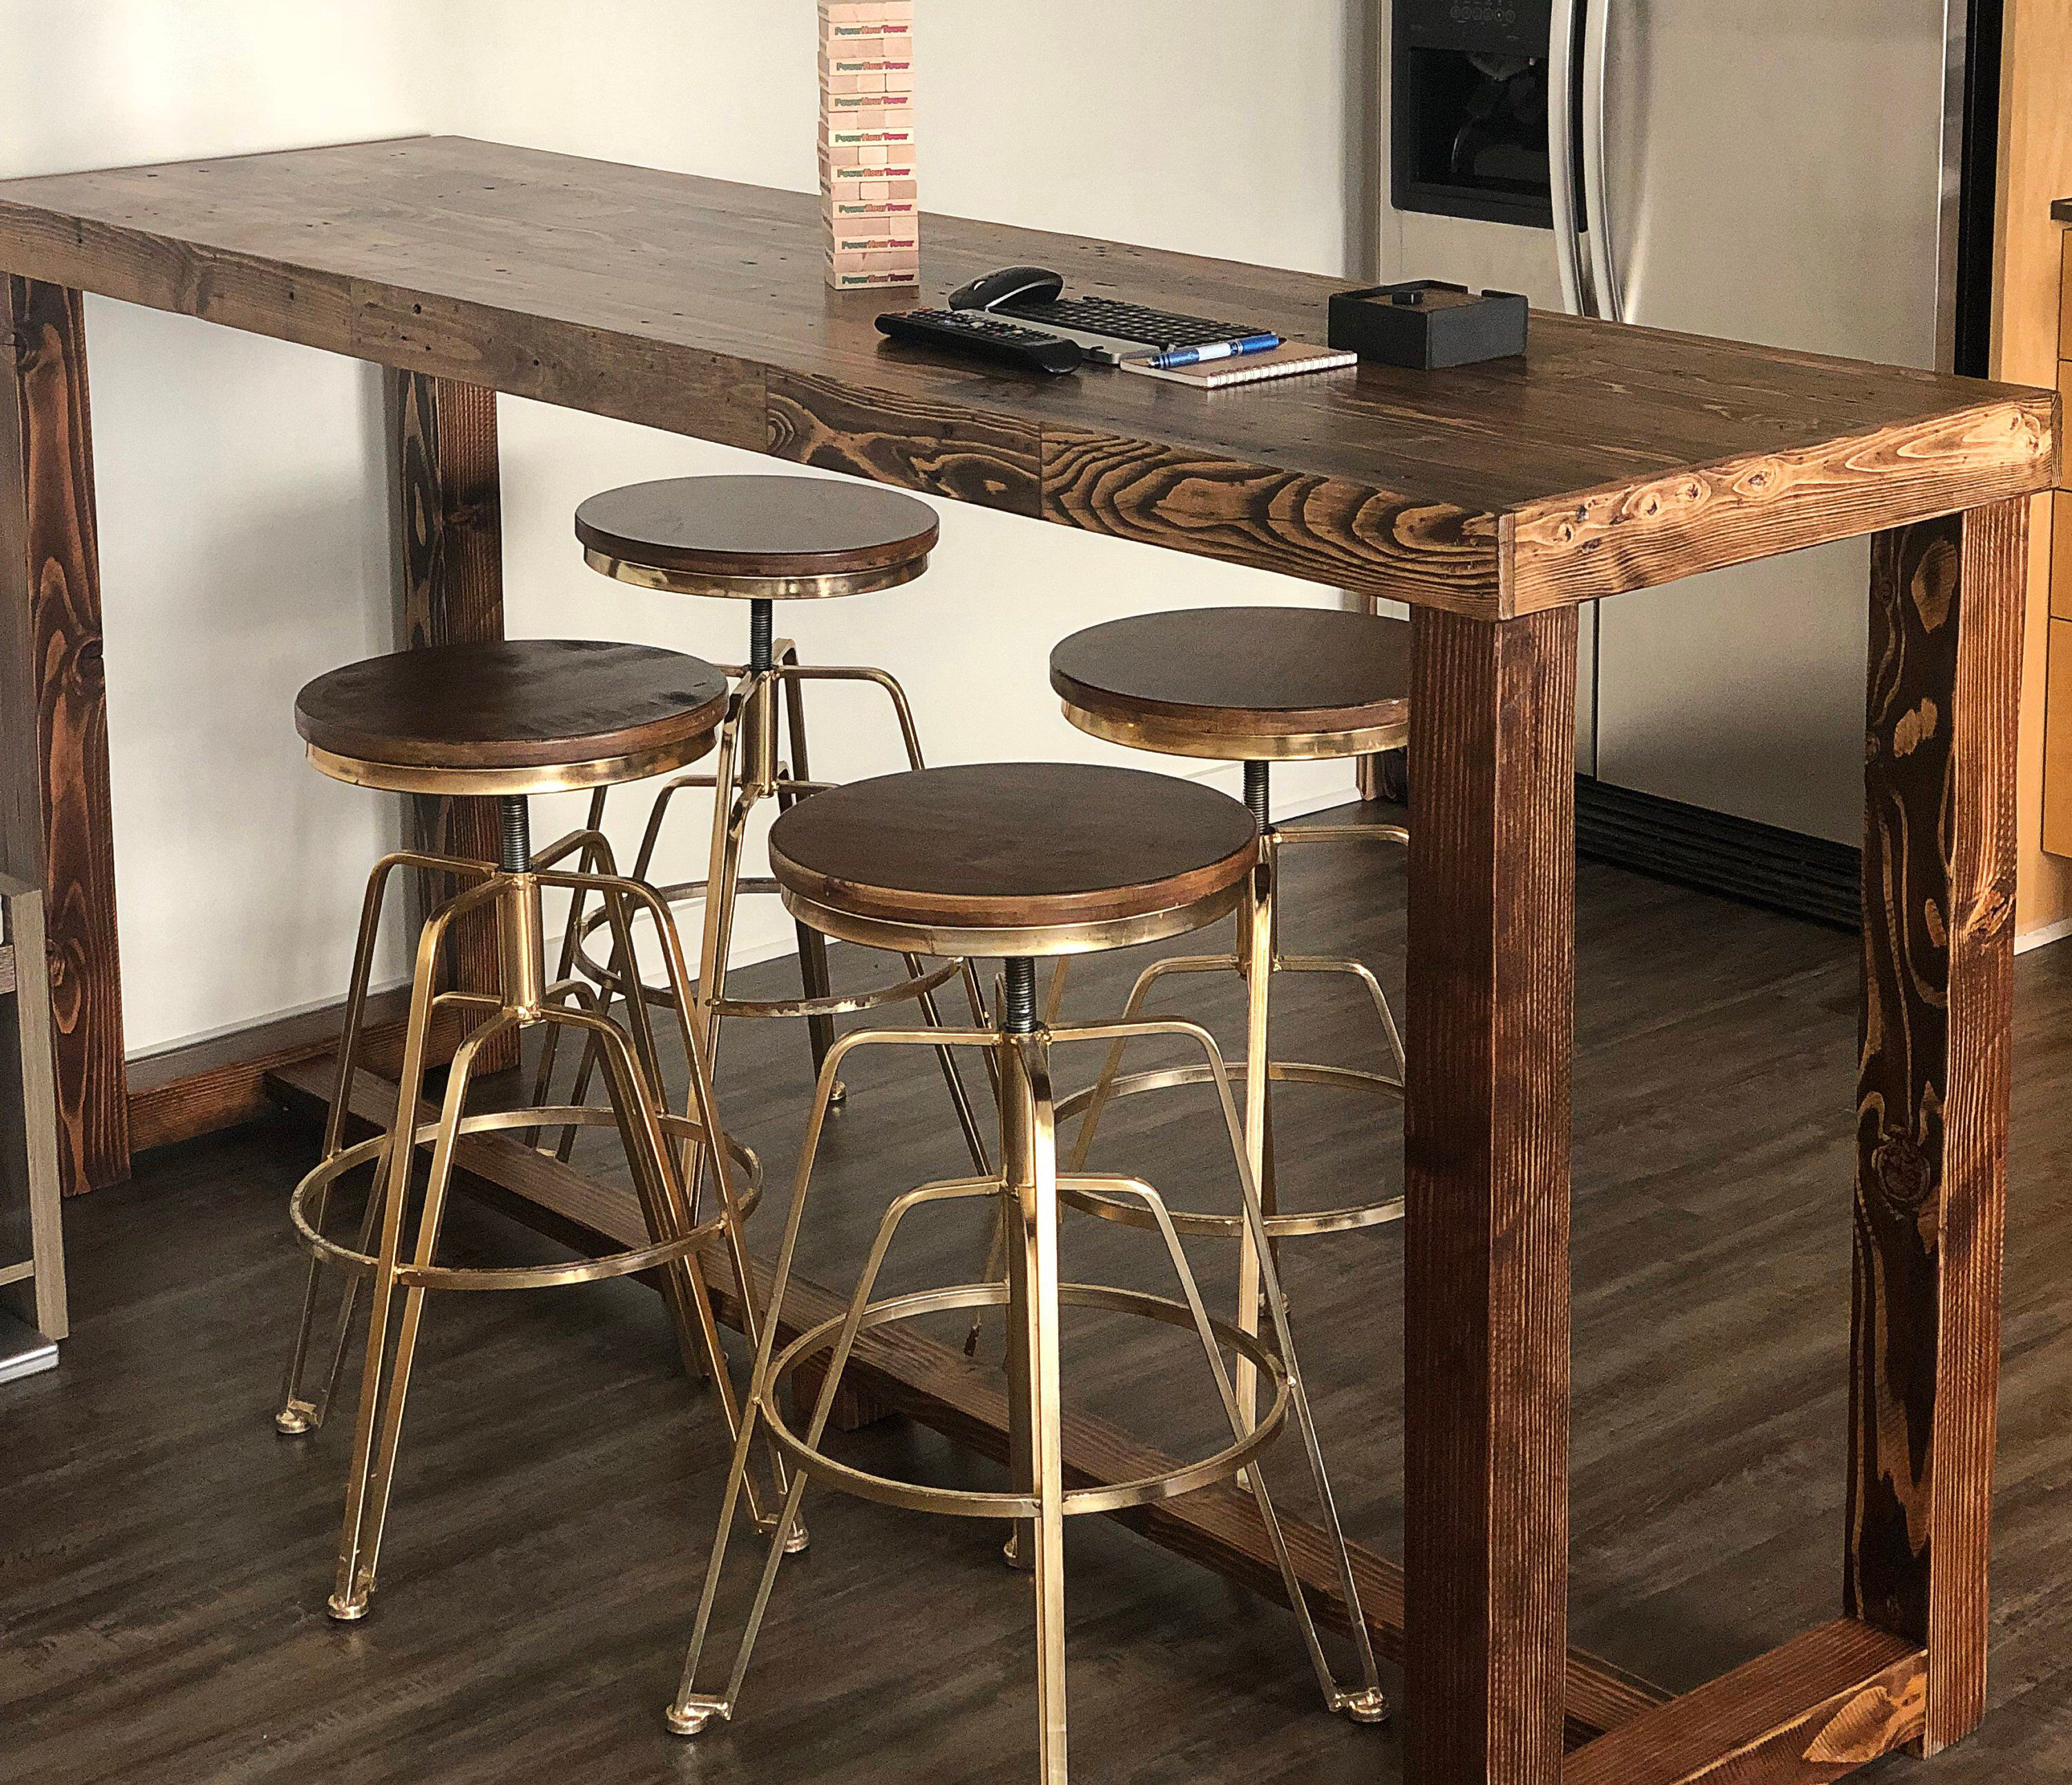 Reclaimed Wood Bar Table In Provincial Restaurant Counter